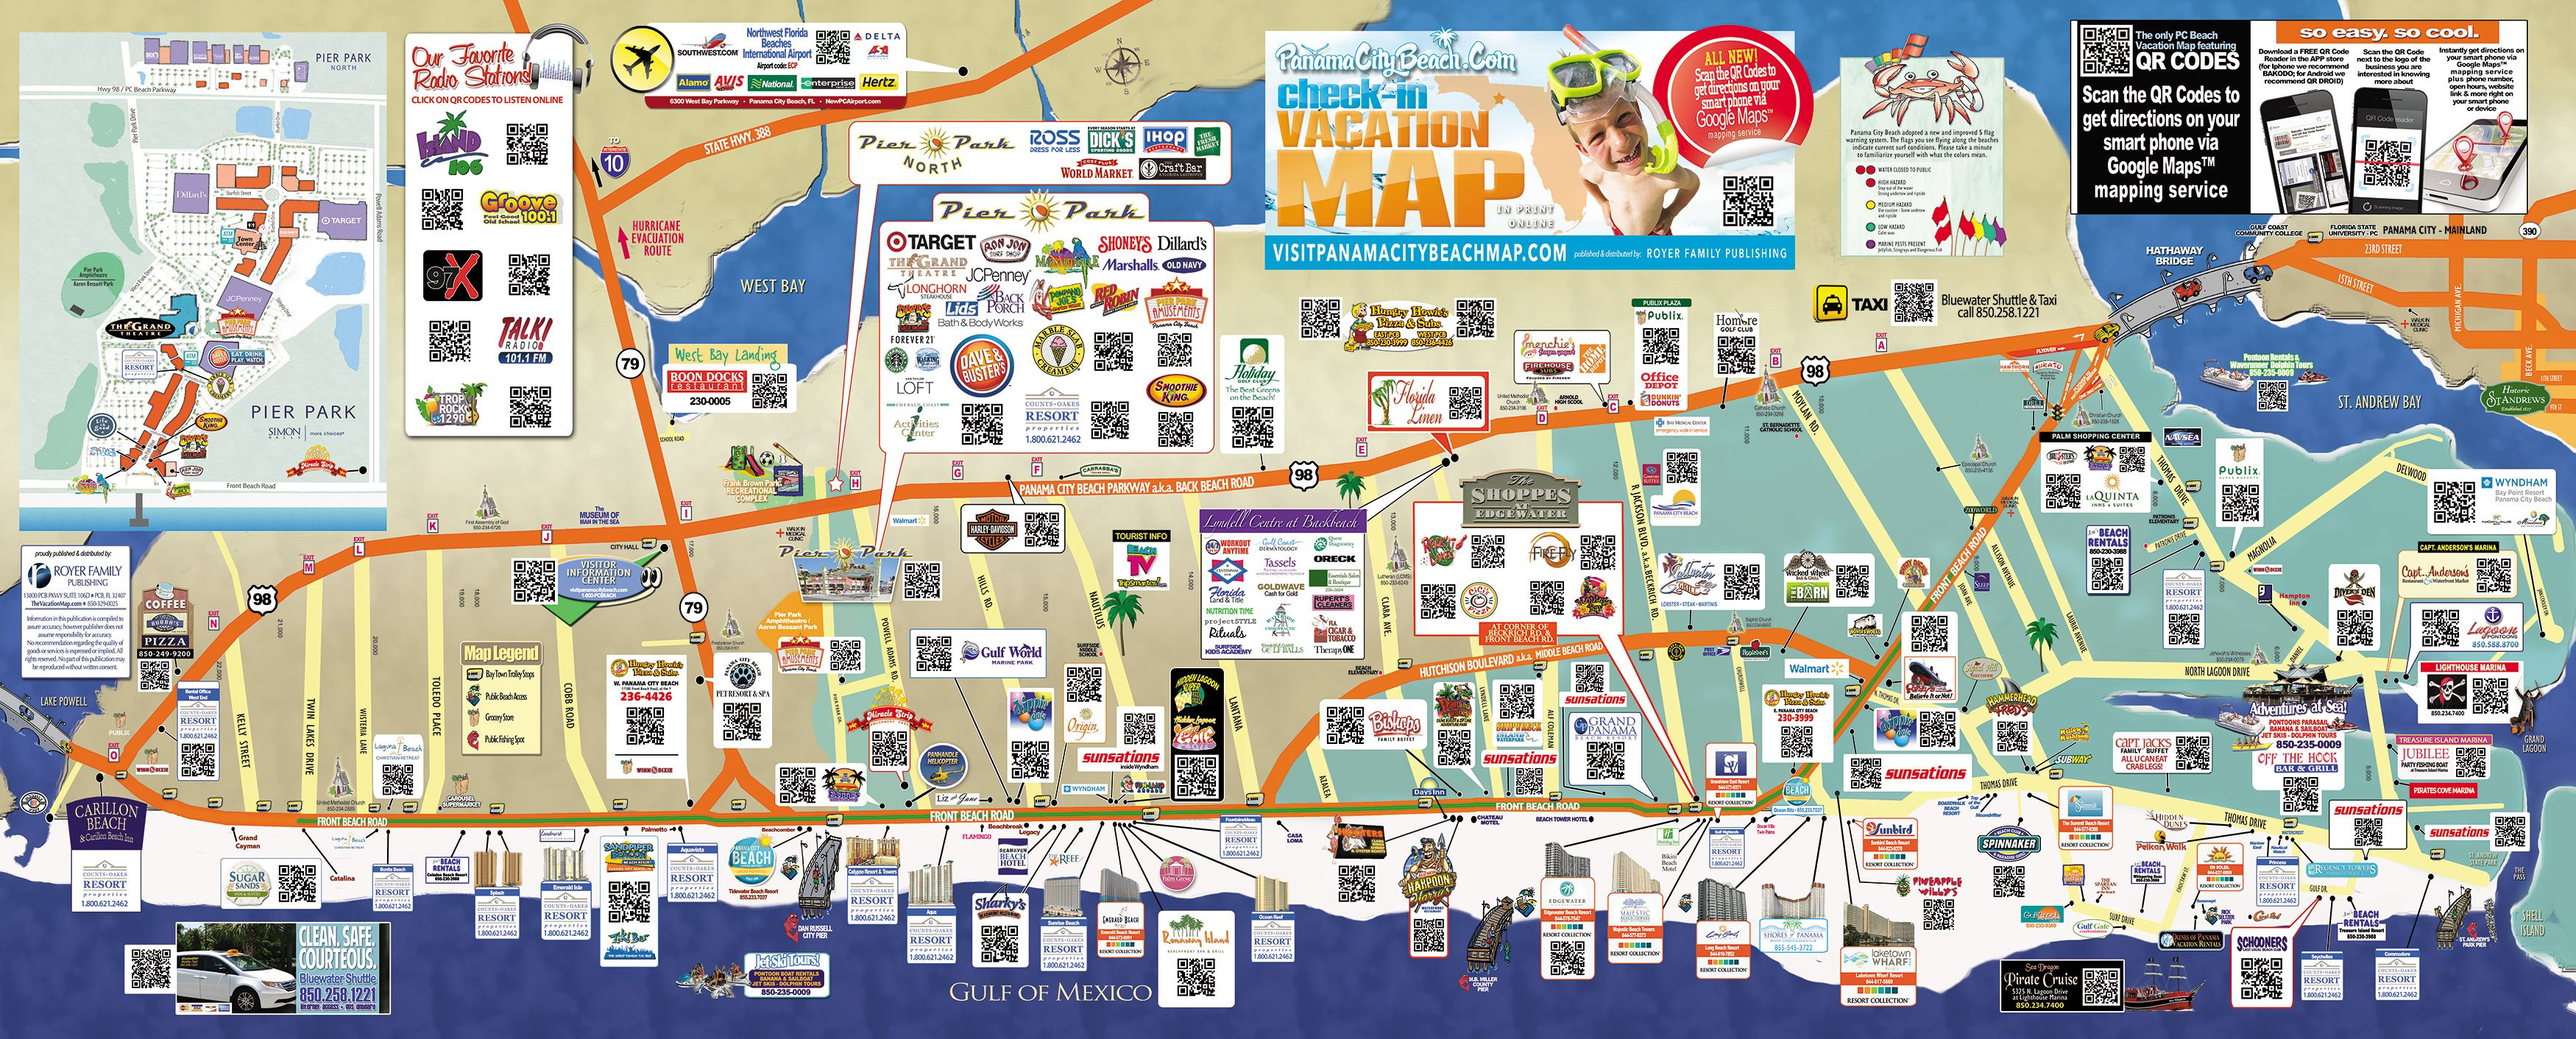 Panama City Beach Map Tourist map of Panama City Beach | To the Beach! | Panama city  Panama City Beach Map